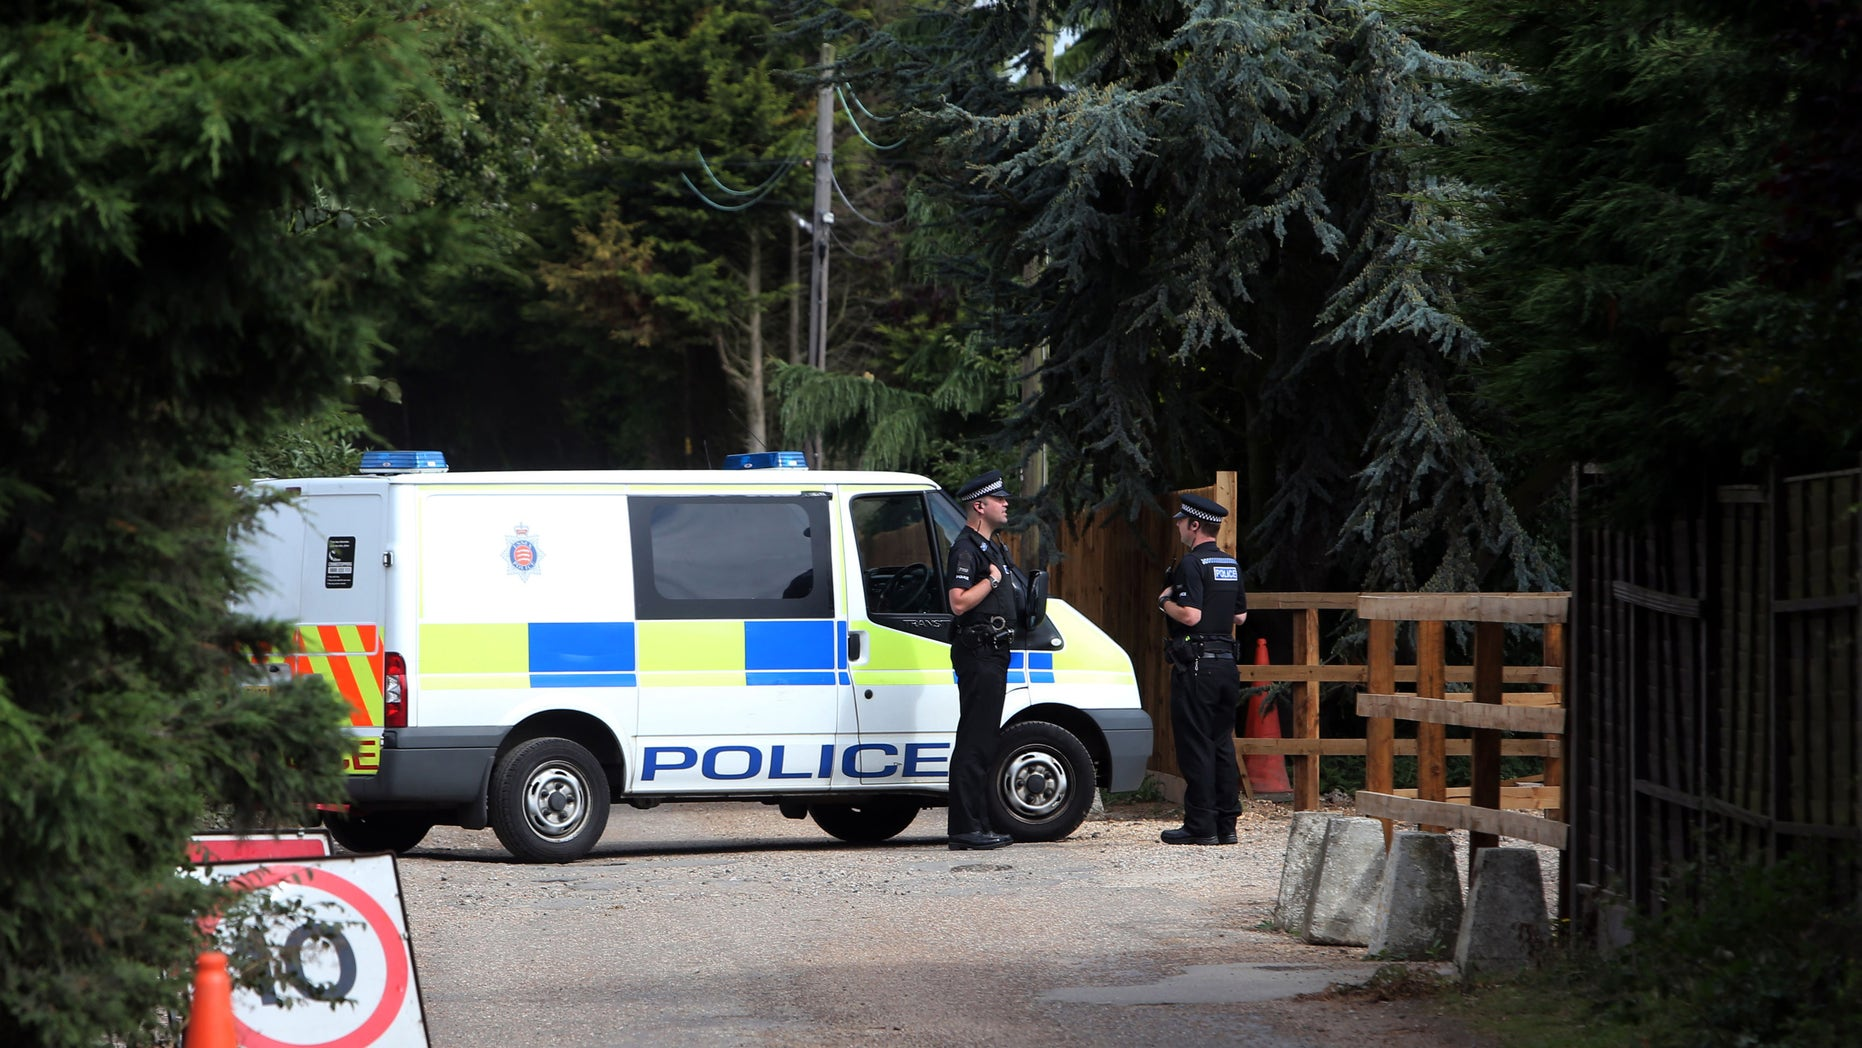 Aug. 27, 2012: Police stand at Earls Hall Farm in St Osyth, southern England where a lion was apparently seen.